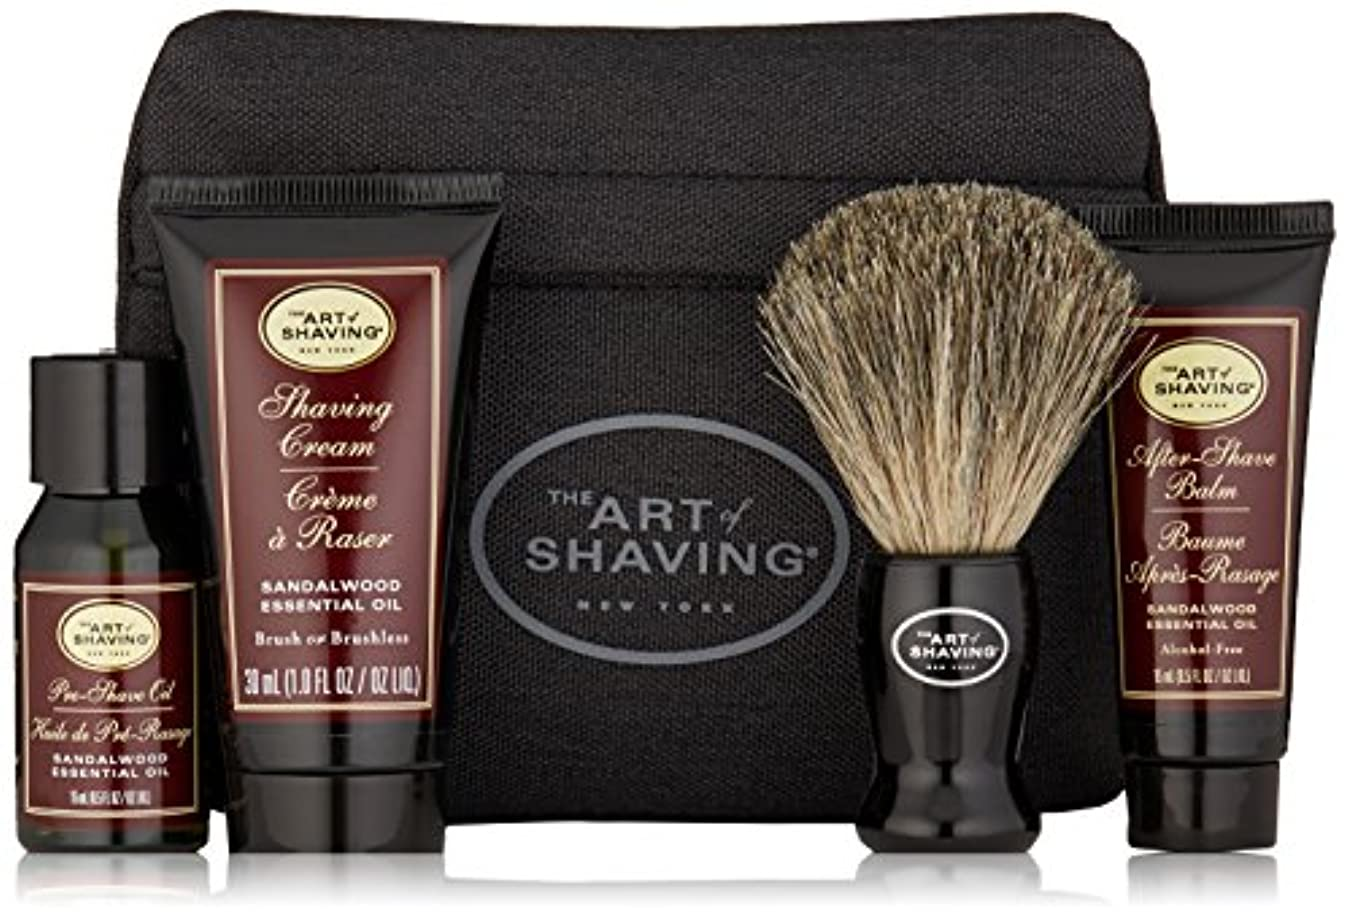 アートオブシェービング Starter Kit - Sandalwood: Pre Shave Oil + Shaving Cream + After Shave Balm + Brush + Bag 4pcs + 1Bag...